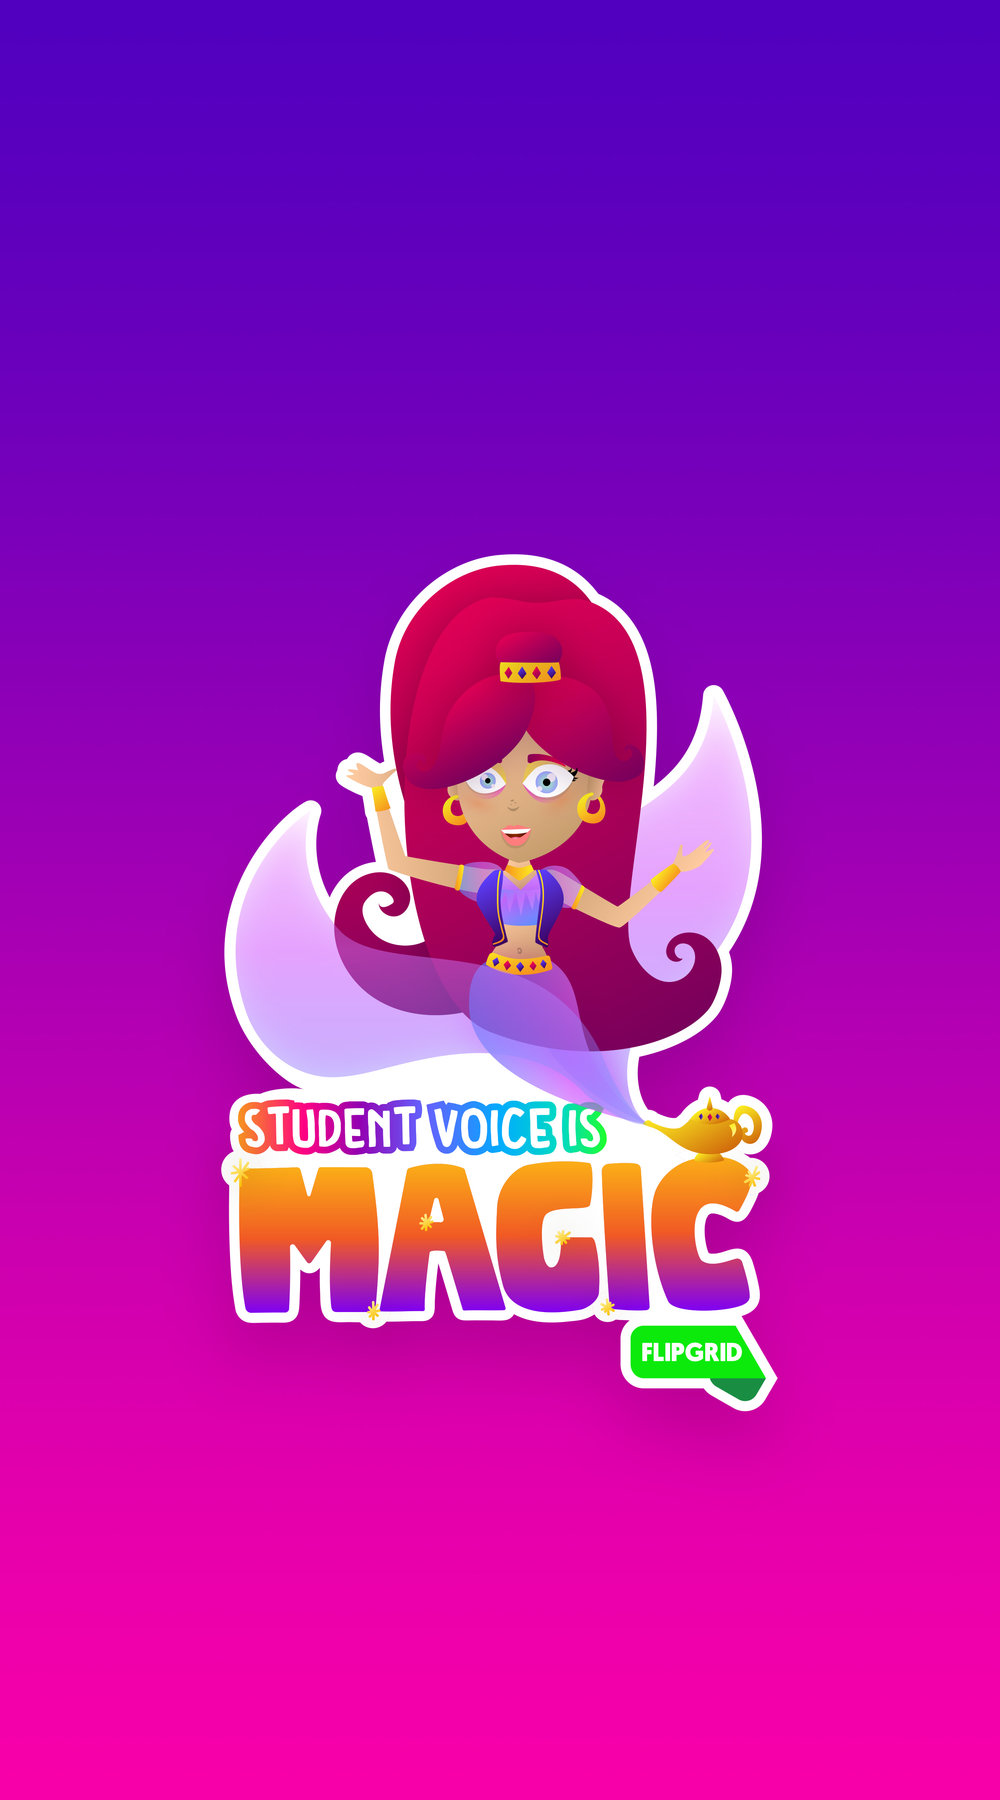 Flipgrid_Genie_Magic_wallpaper.jpg